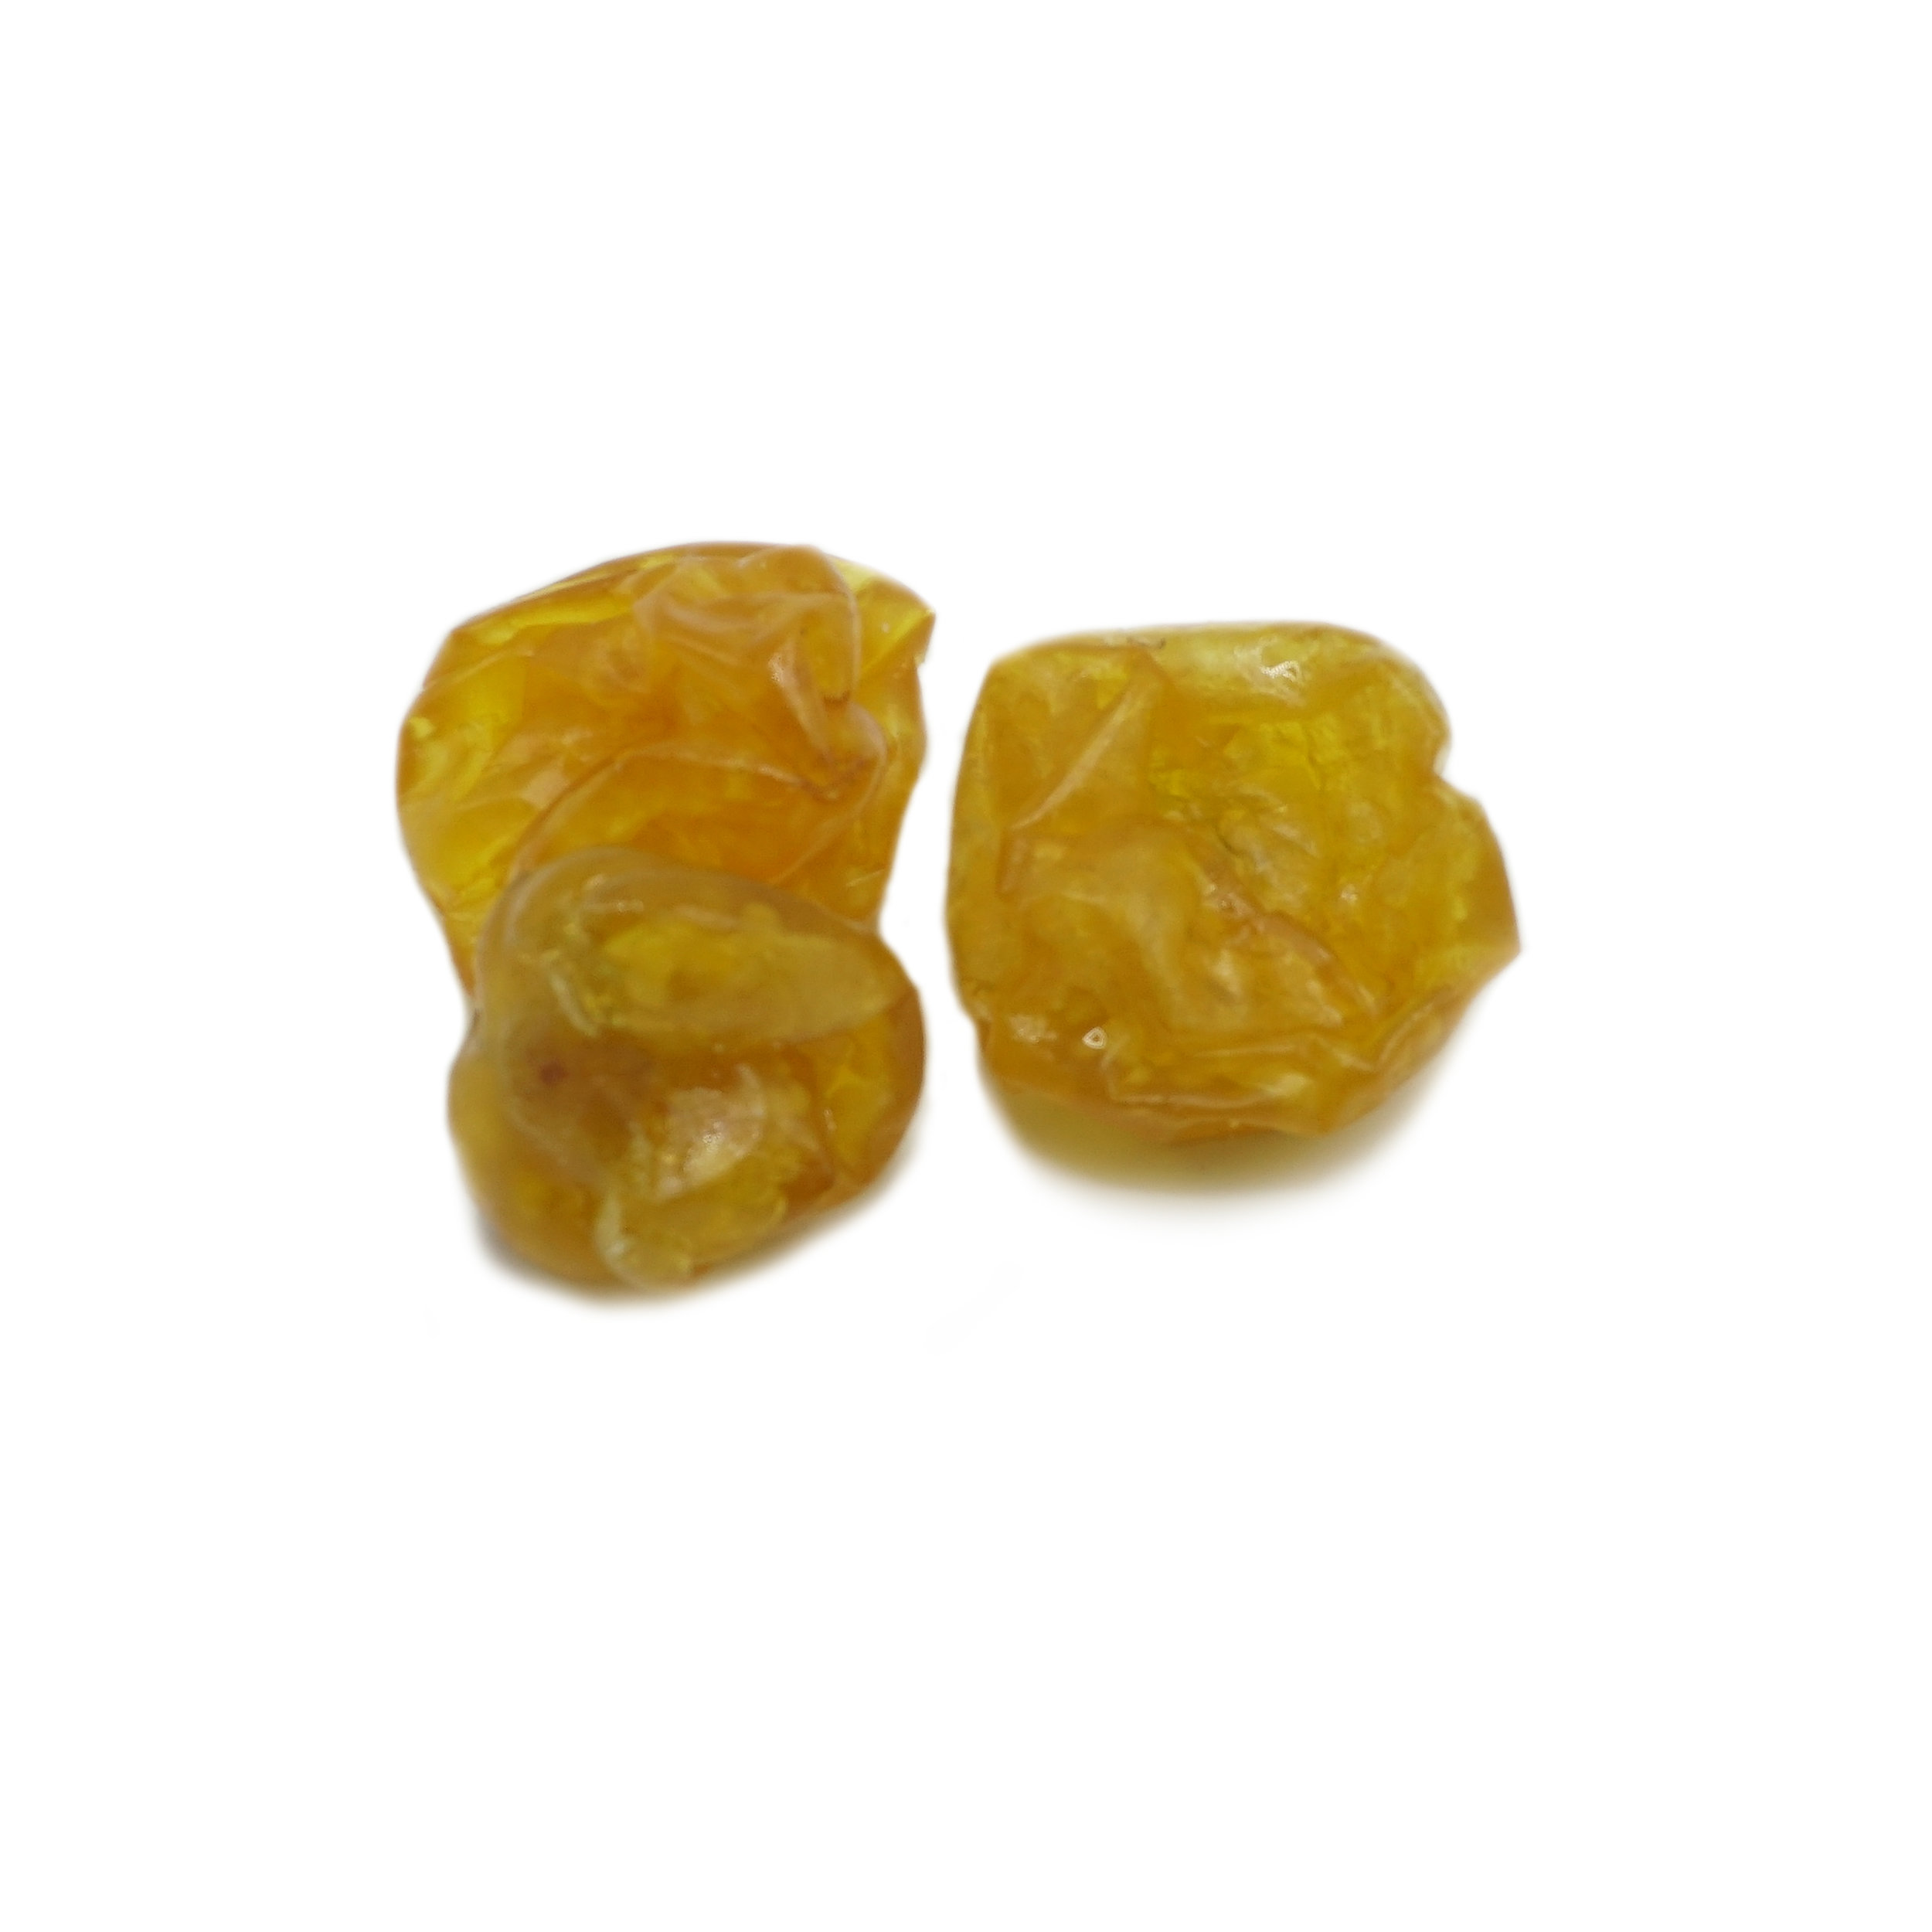 Dried Golden Berry    غولدن بري مجفف